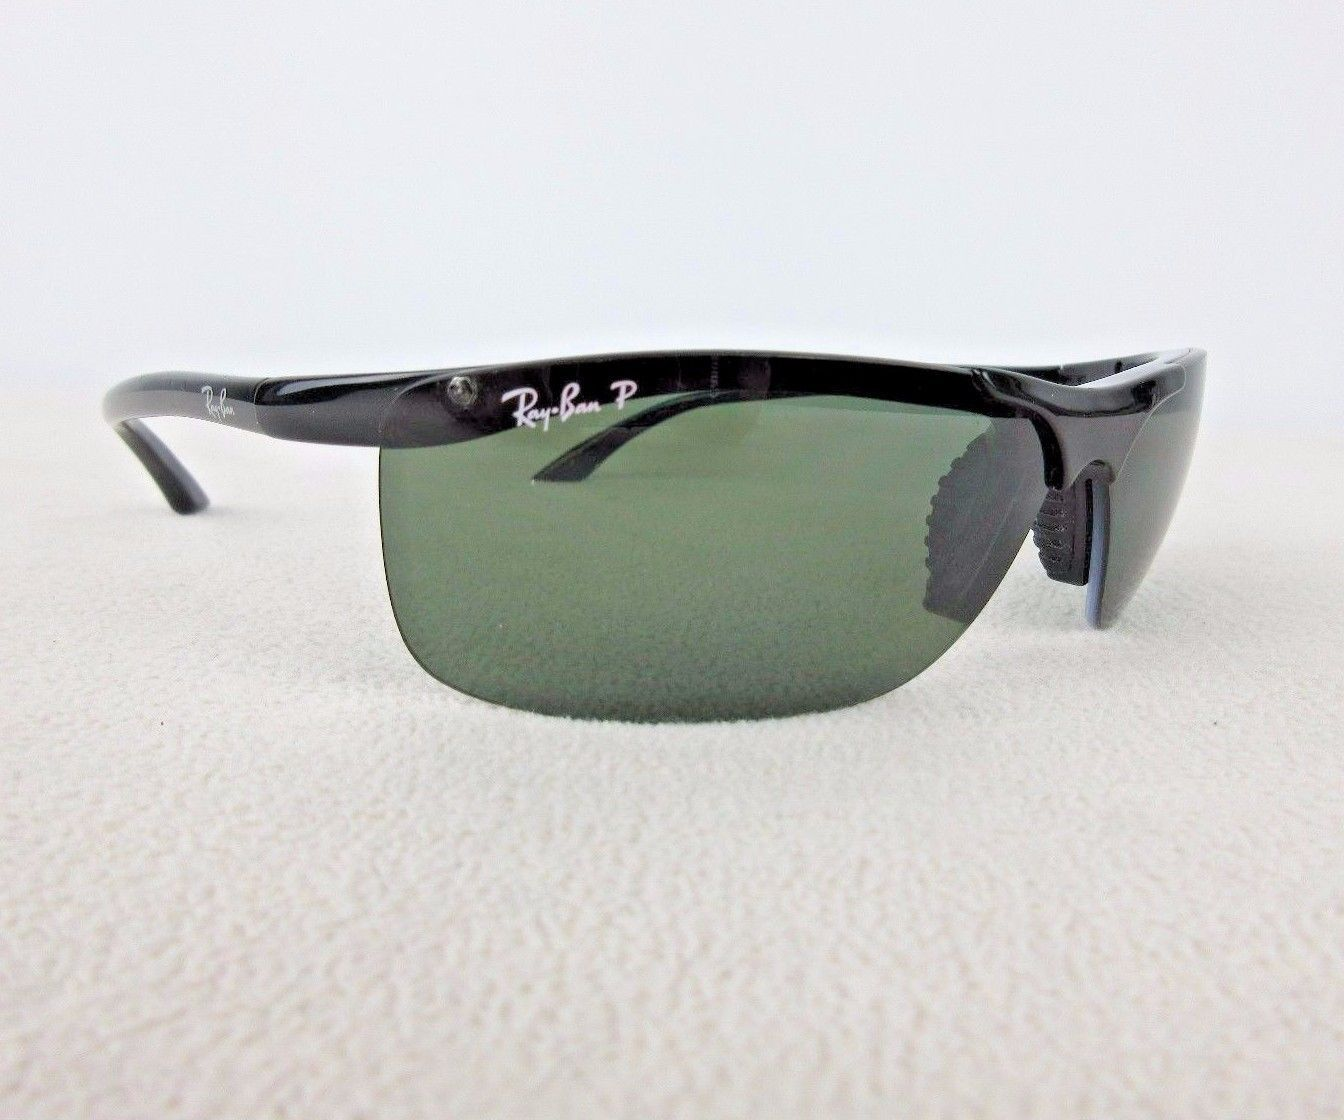 RAY-BAN RB 4085 601/9A 3P Active Lifestyle Polarized Sunglasses Black Italy https://t.co/bldwPBrjwp https://t.co/FtH0OX3kvw